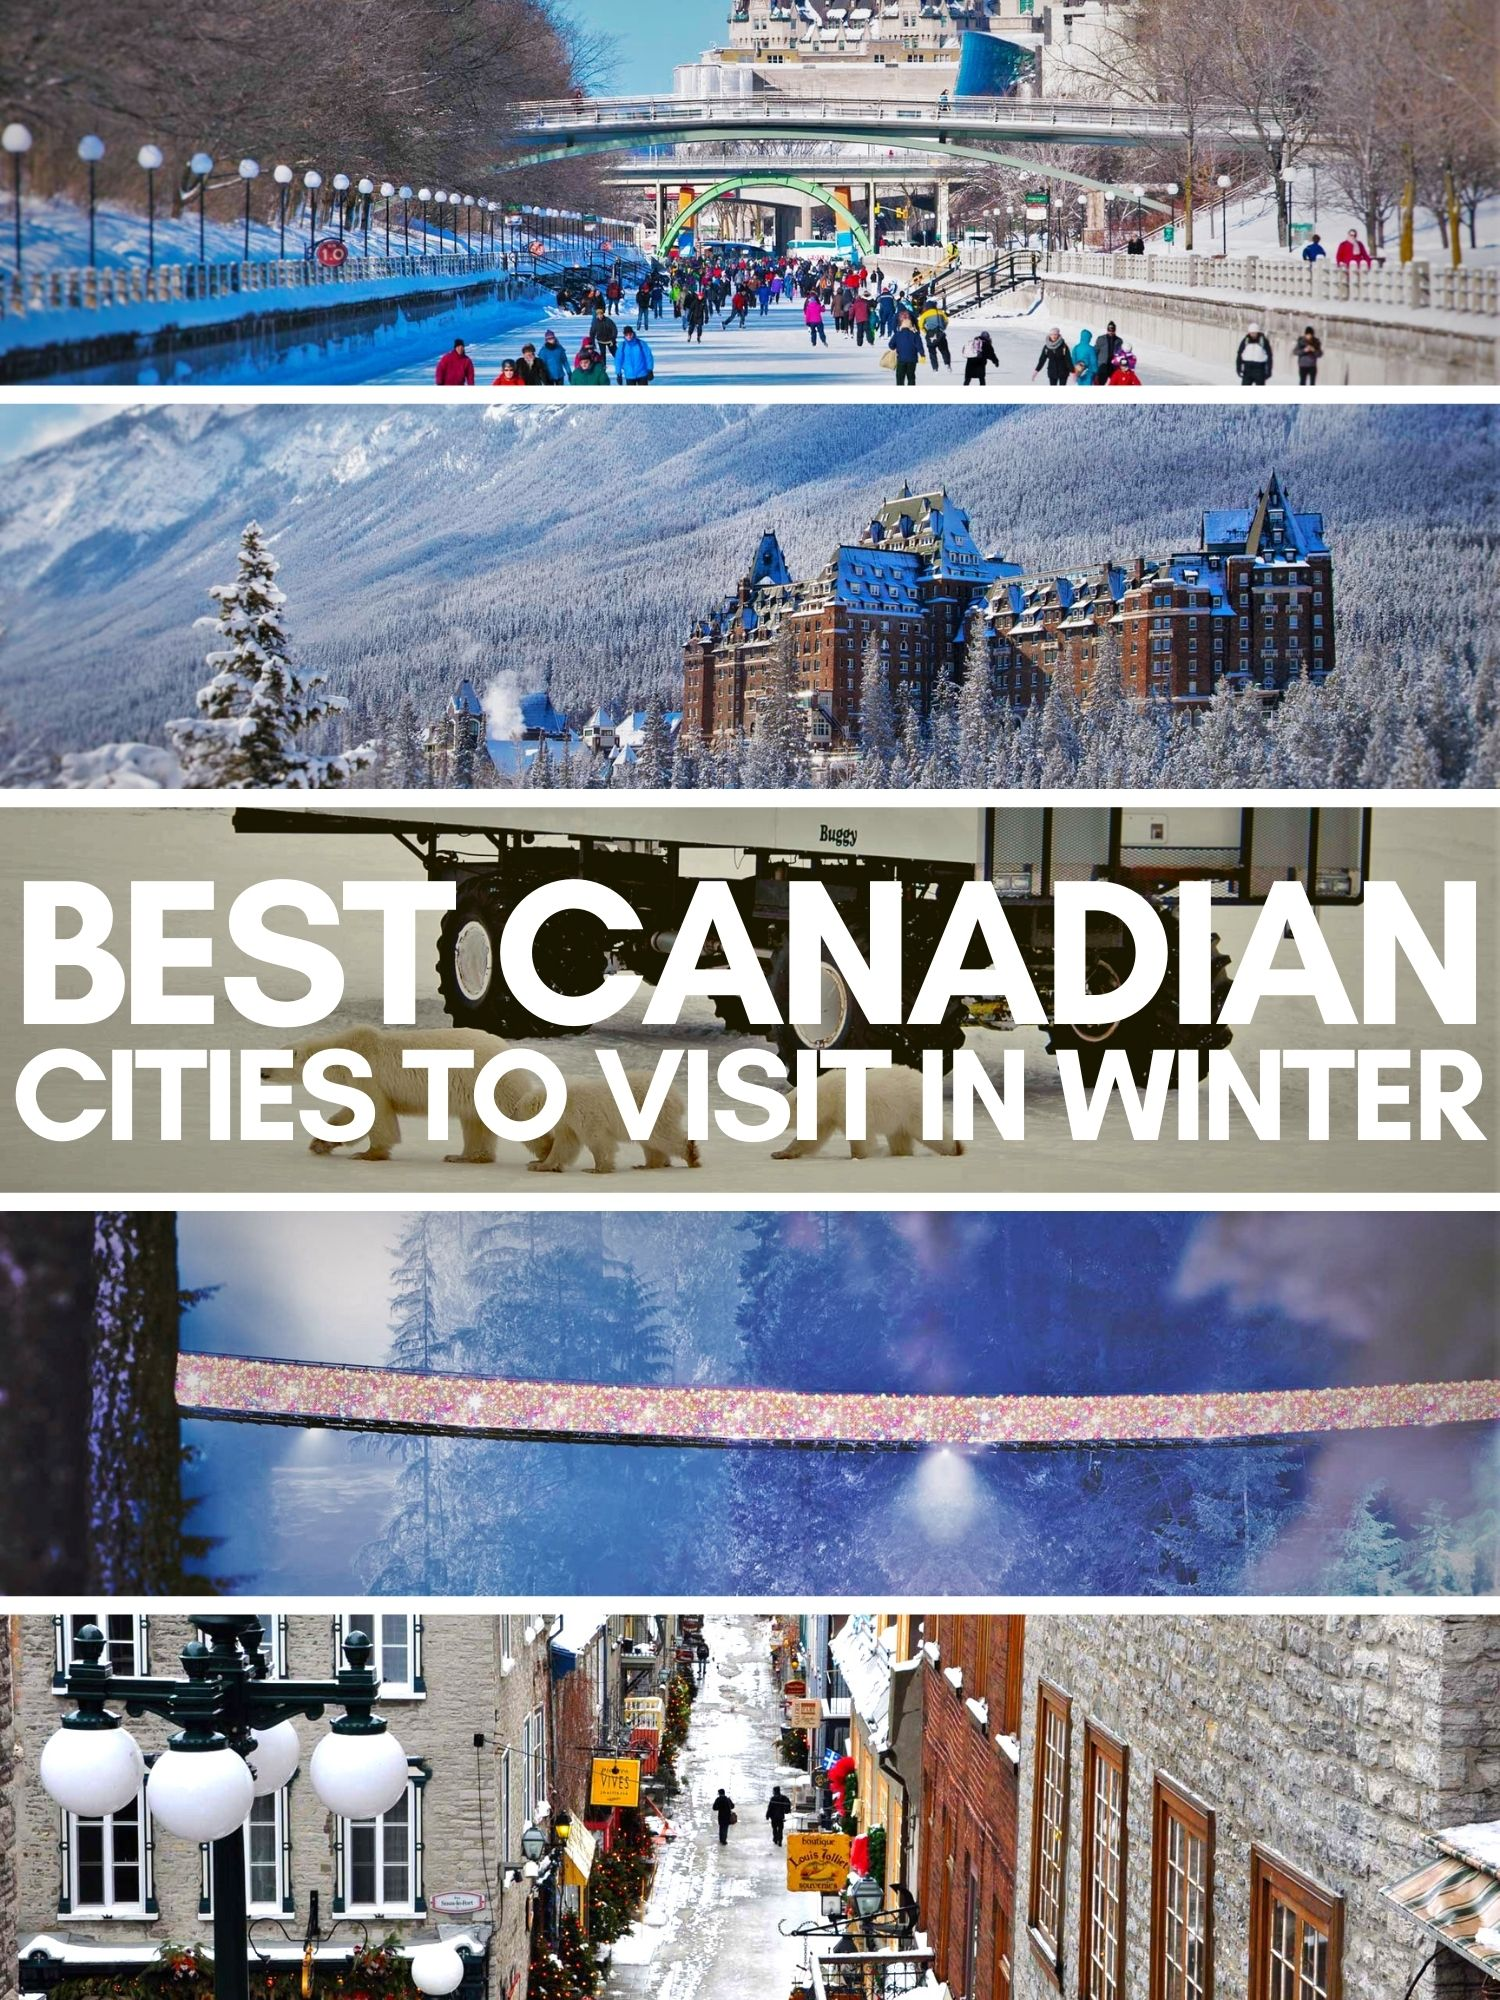 Canada may be cold in the winter, but these Canadian cities have unique things to do, ways to stay warm, and amazing hotels in the snow. Perfect Canadian adventures!